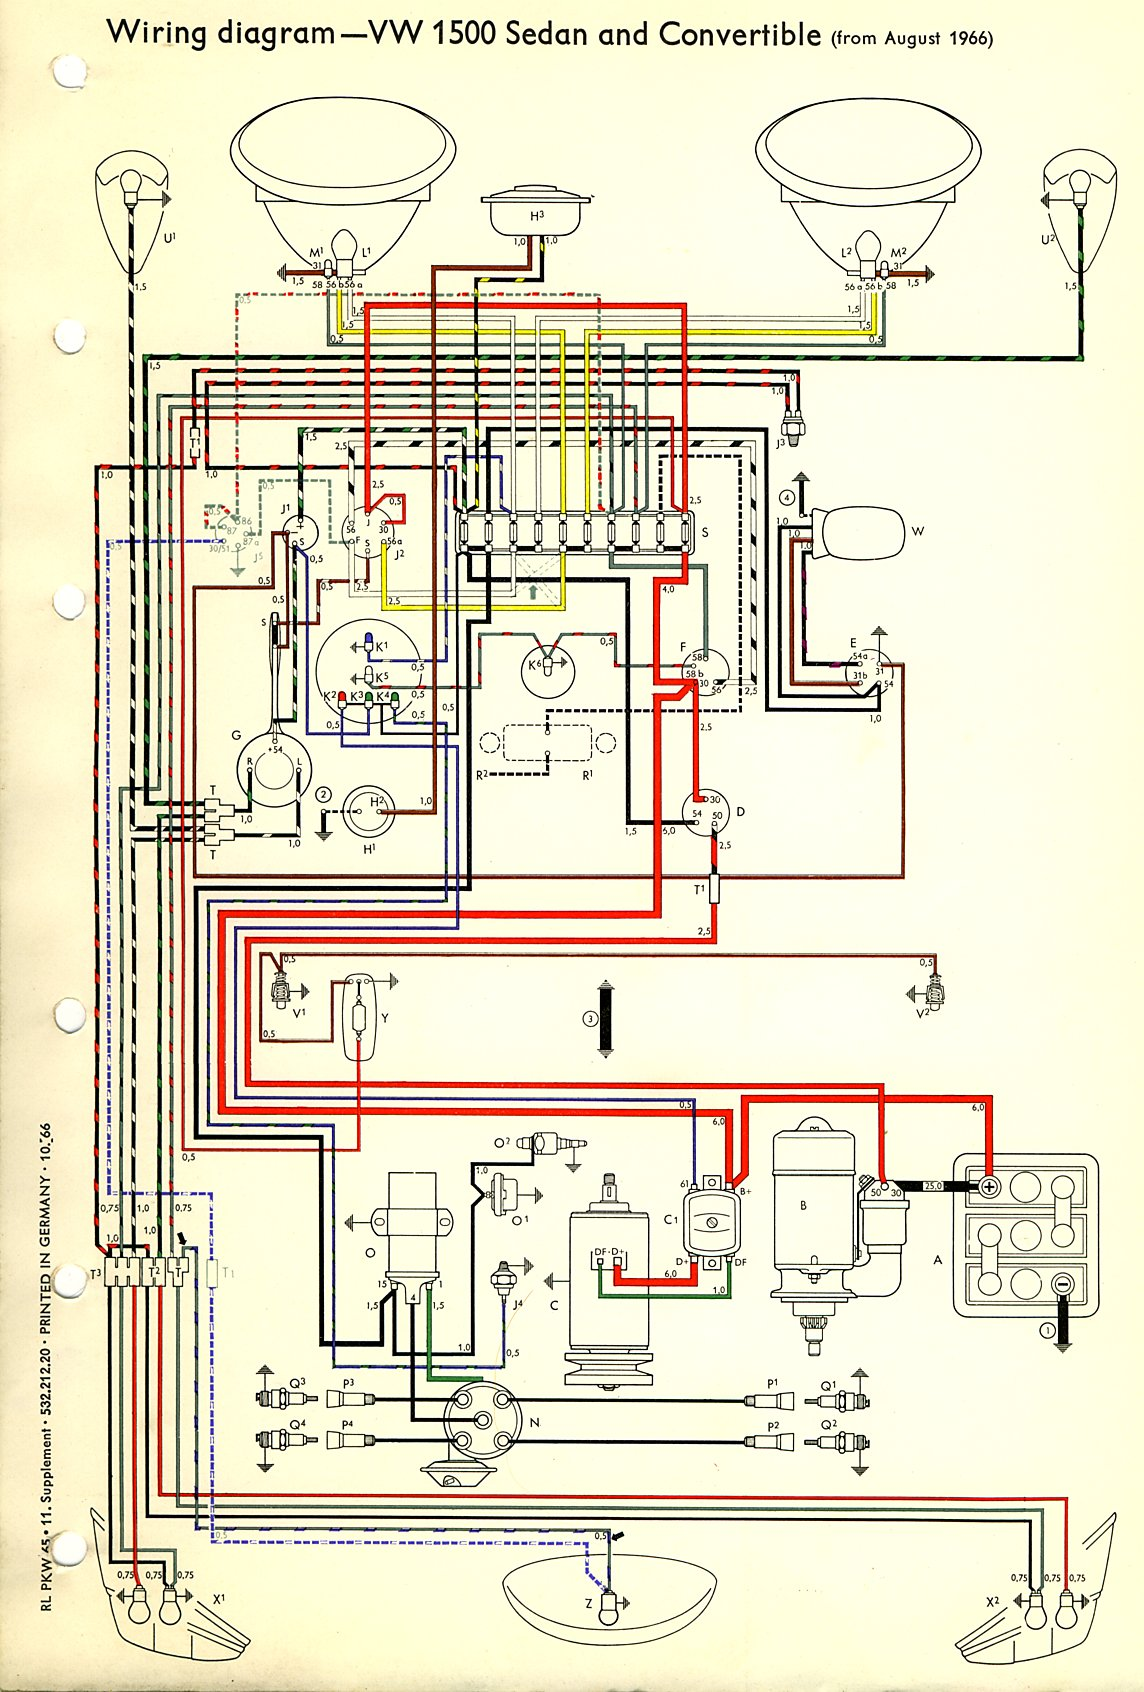 Harley Davidson Color Code Location moreover 1967 beetle wiring diagram as well 610913 Immobilizer Bypass 2 further Lamborghini Side View Diagram as well Wiringheadlightrelays. on porsche wiring diagram